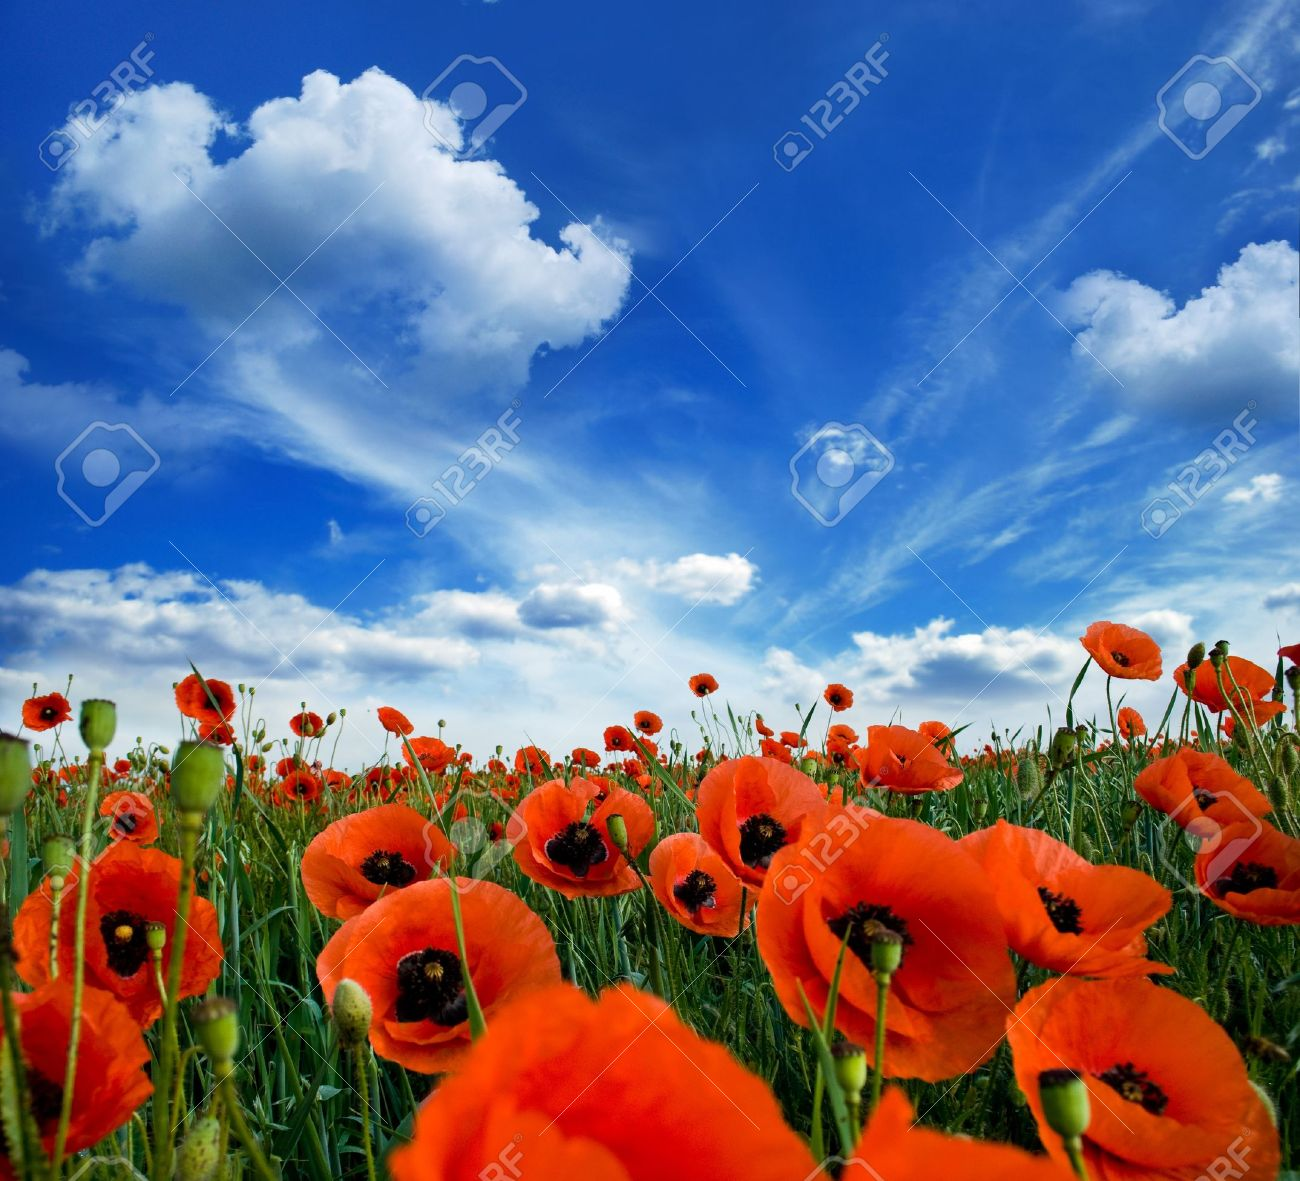 Poppies Blooming In The Wild Meadow High In The Mountains Stock ...